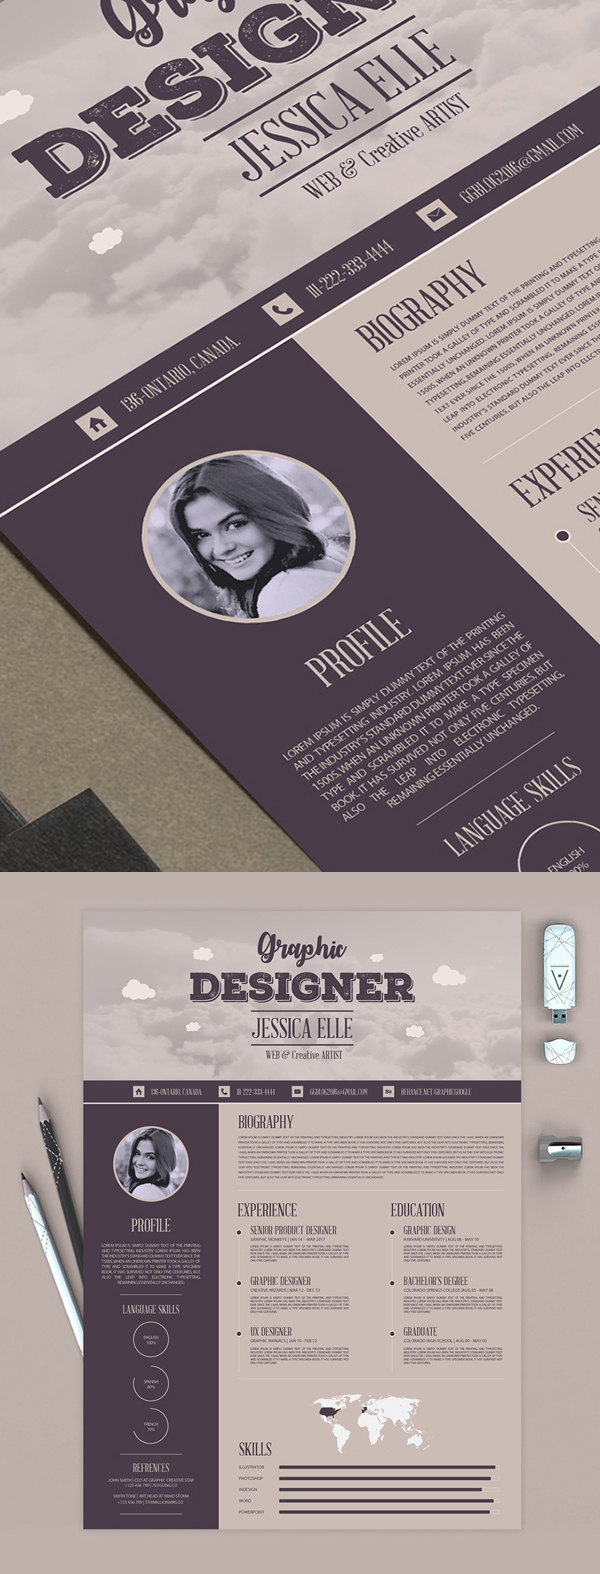 50 Free Resume Templates: Best Of 2018 -  16